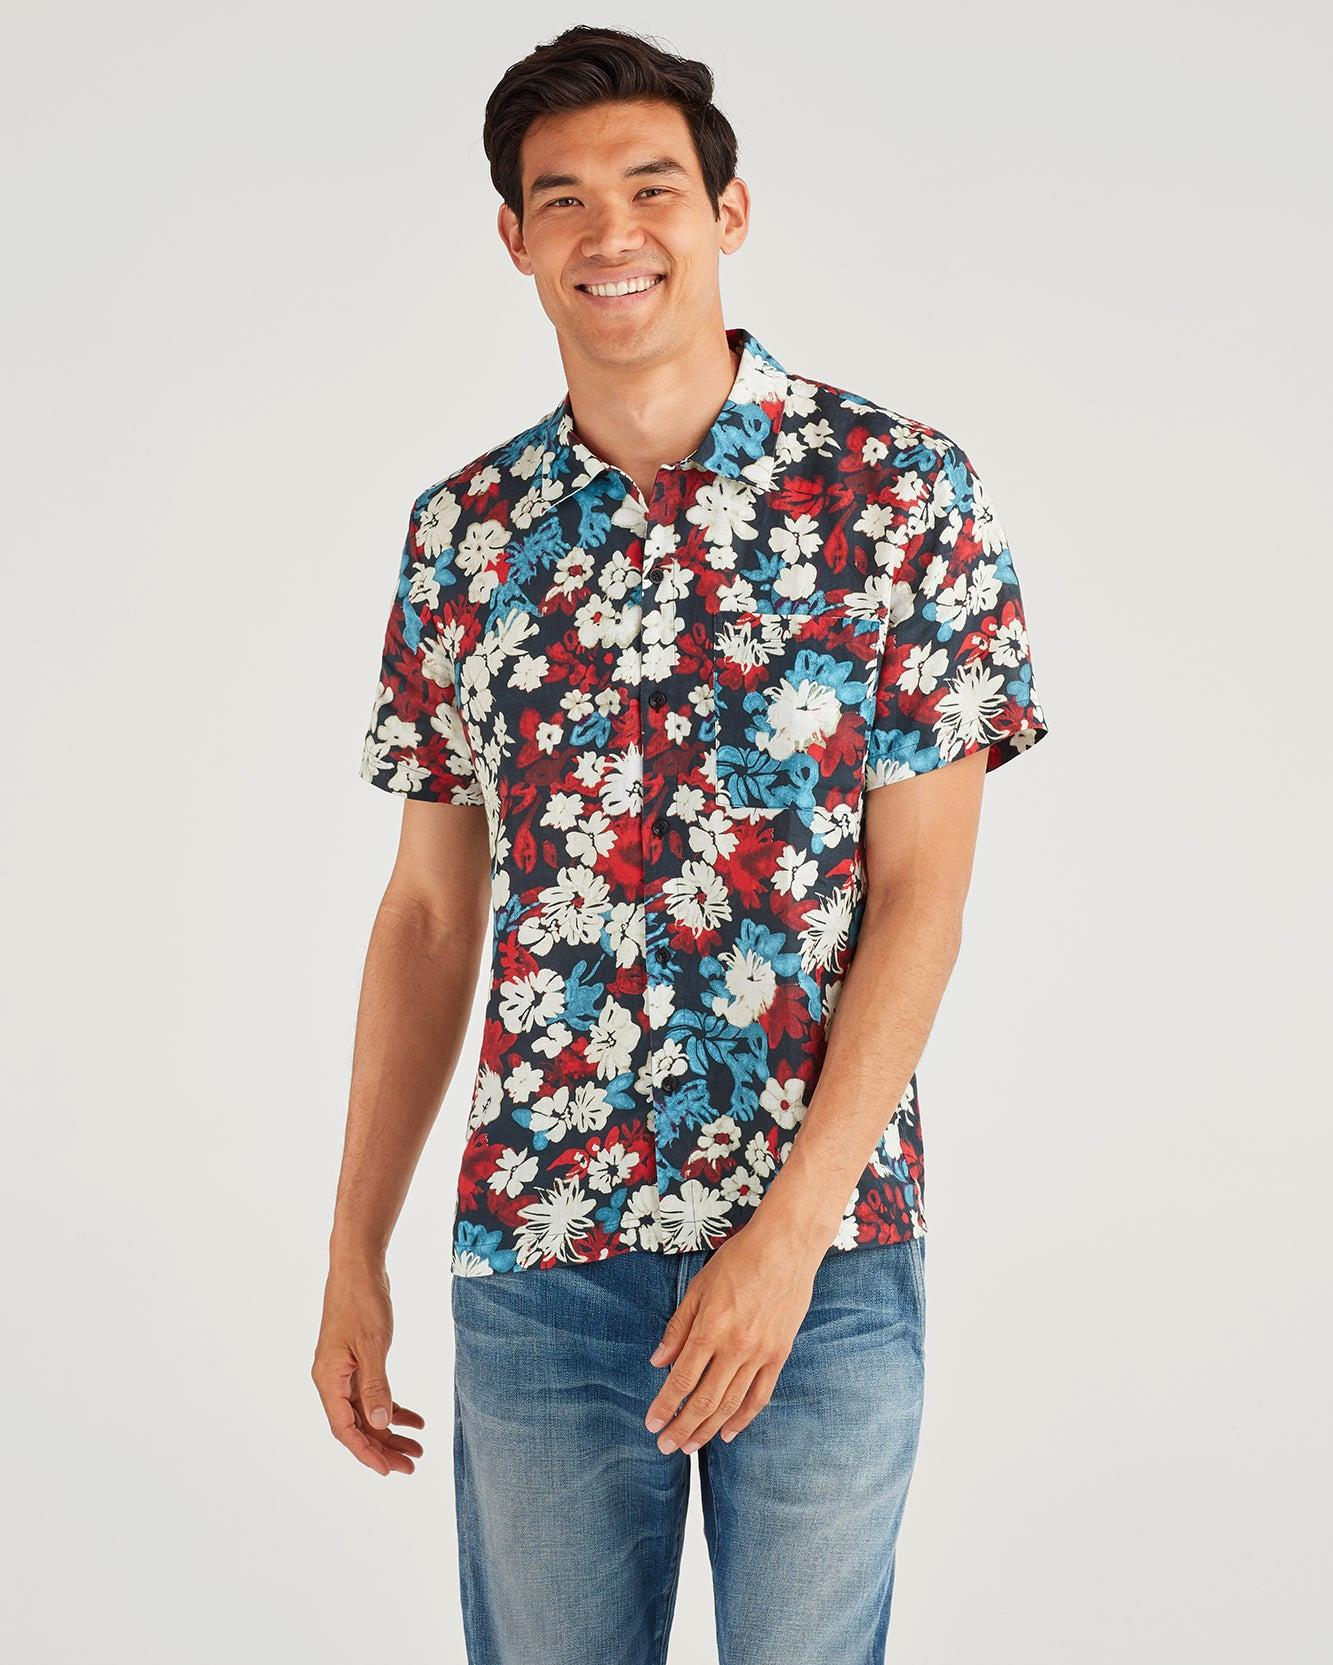 Aloha Short Sleeve Shirt in Poppy Floral